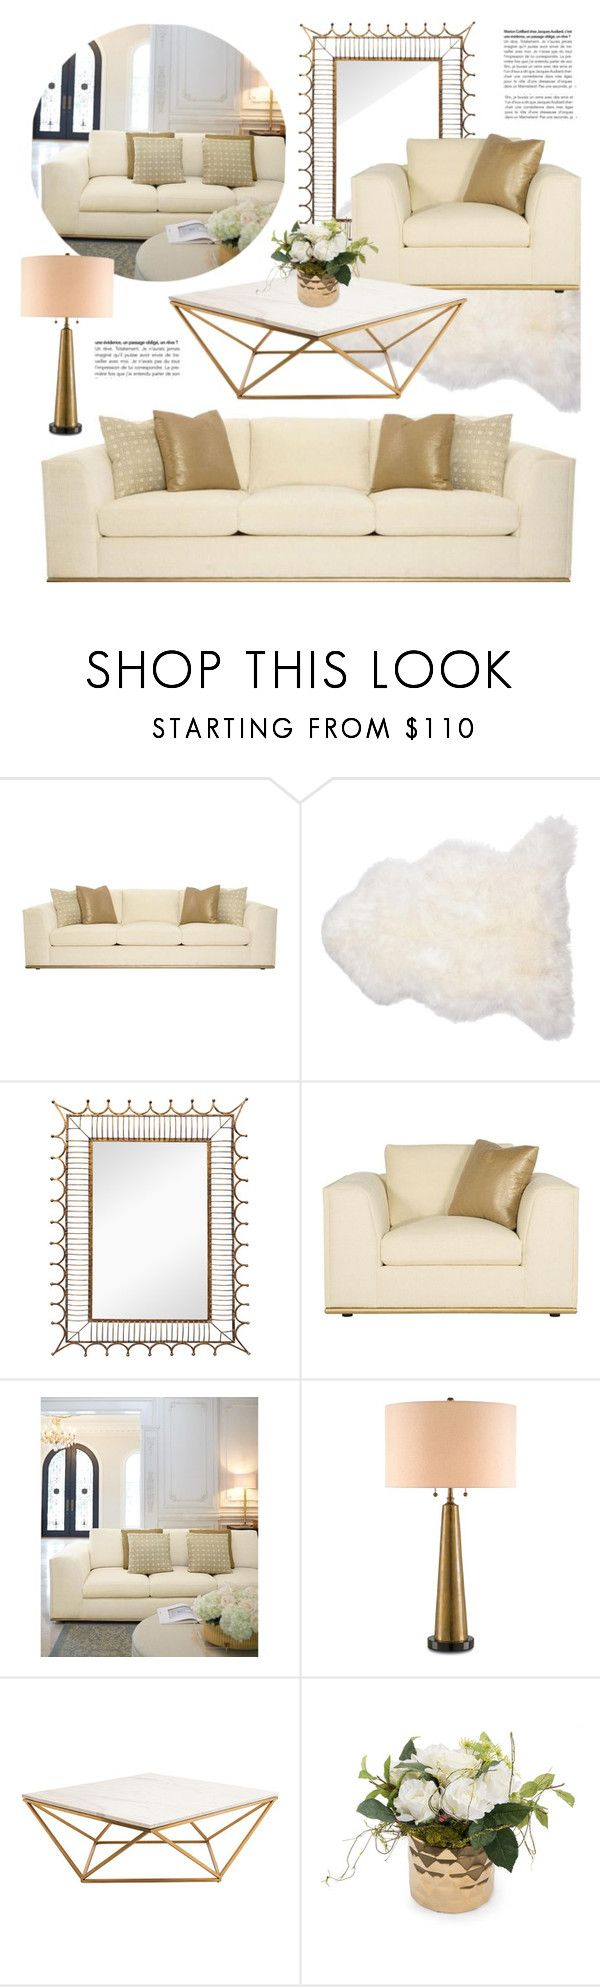 Glamorous Living Room By Kathykuohome Liked On Polyvore Featuring Interior Interiors